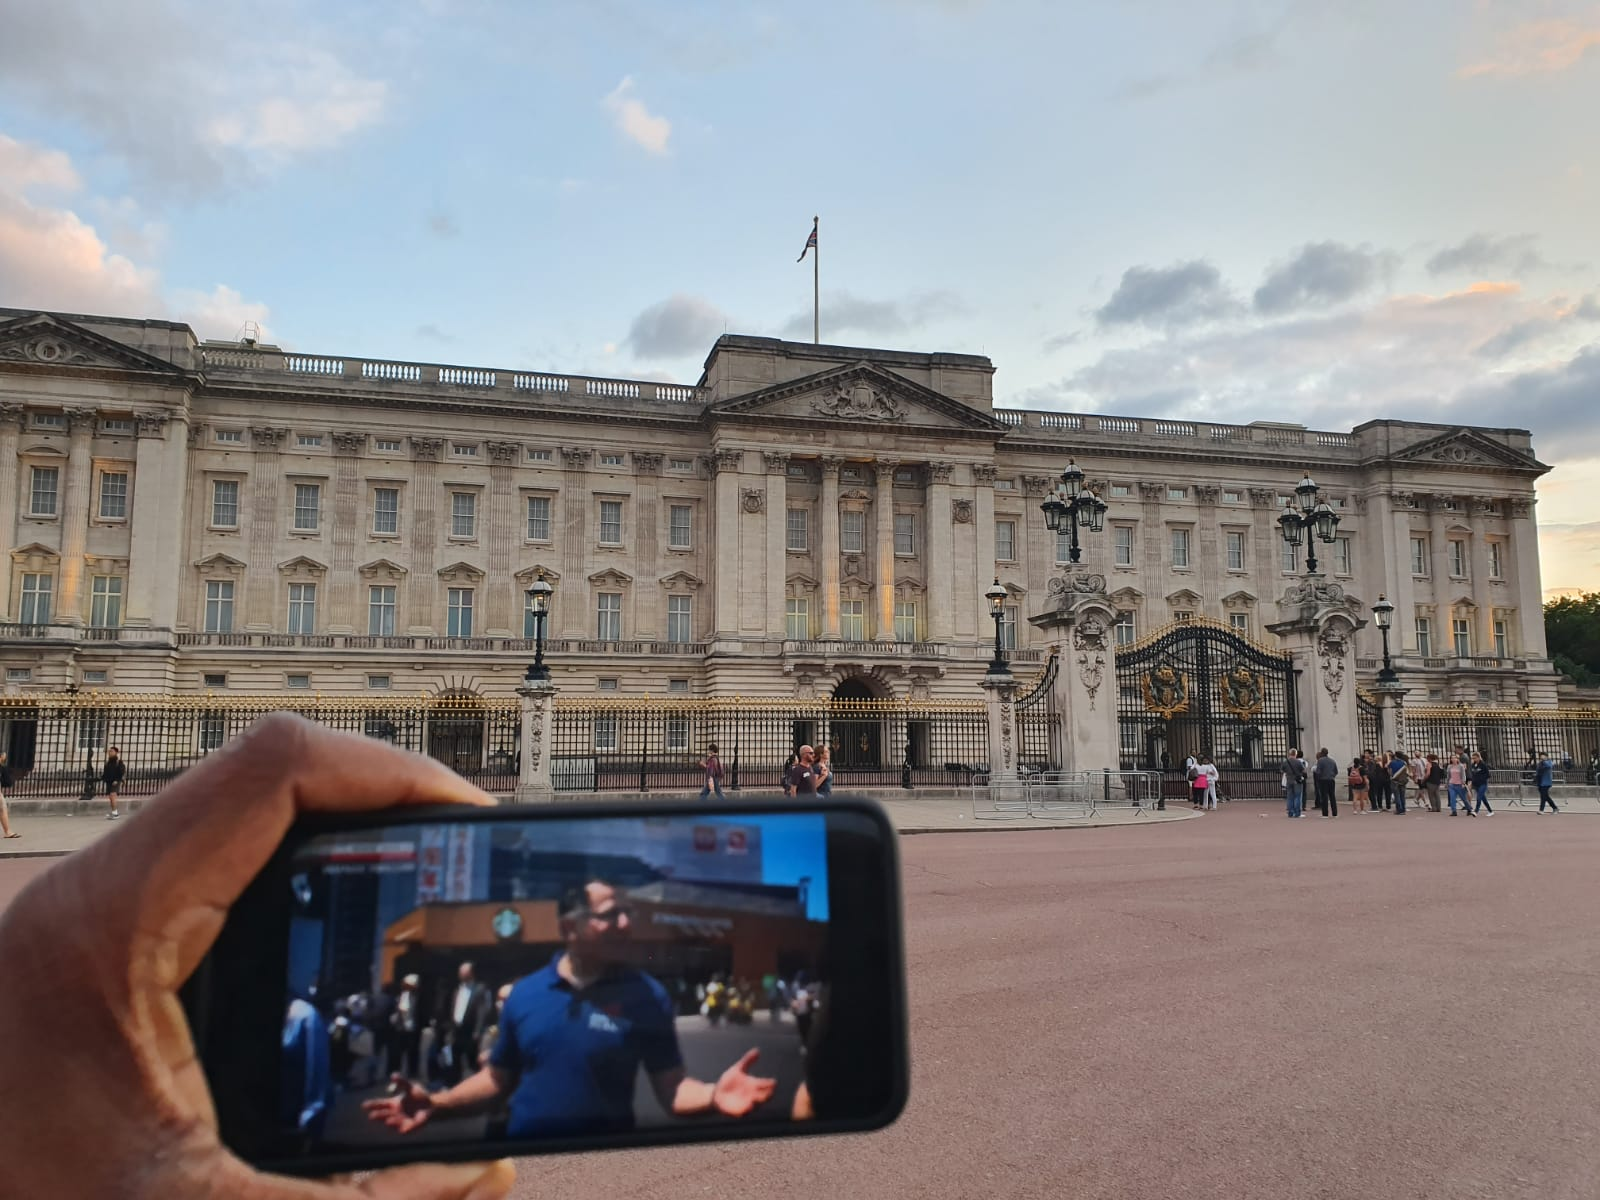 Daryl Wright watching Triangle Thrillers outside Buckingham Palace, London